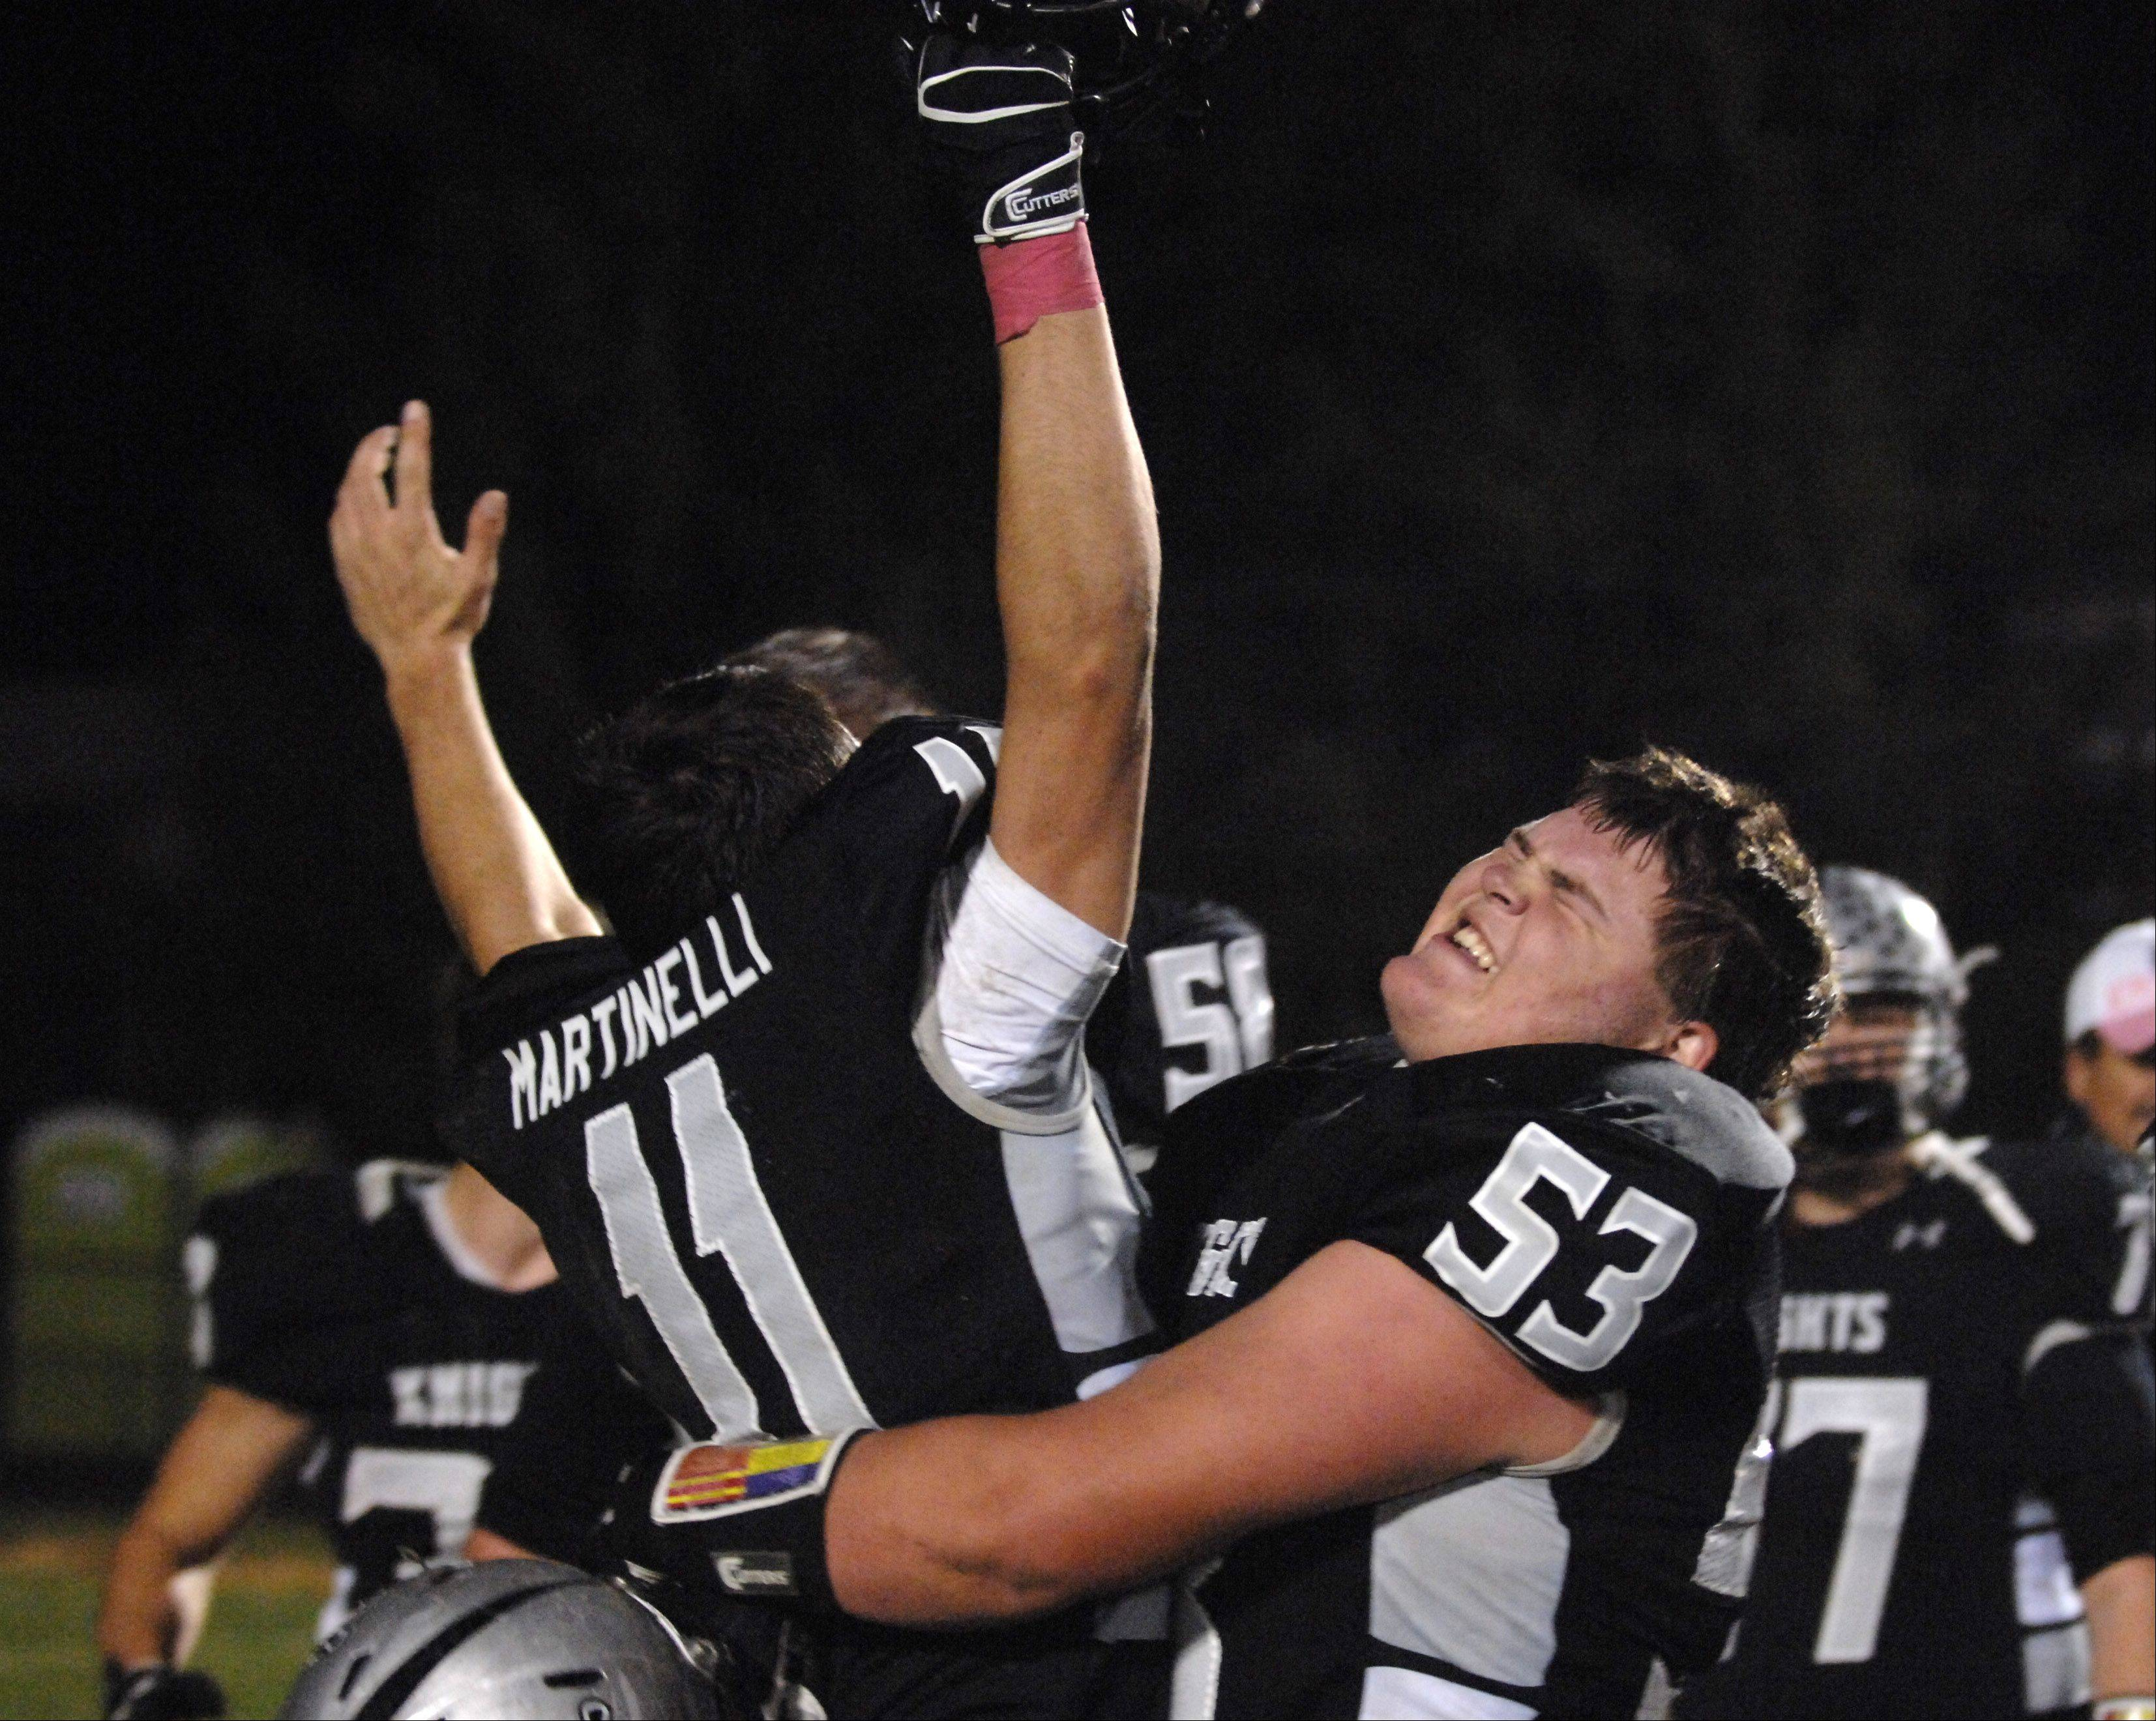 Kaneland's Justin Diddell, right, grabs teammate Zack Martinelli after their win over Morris Friday in Maple Park.